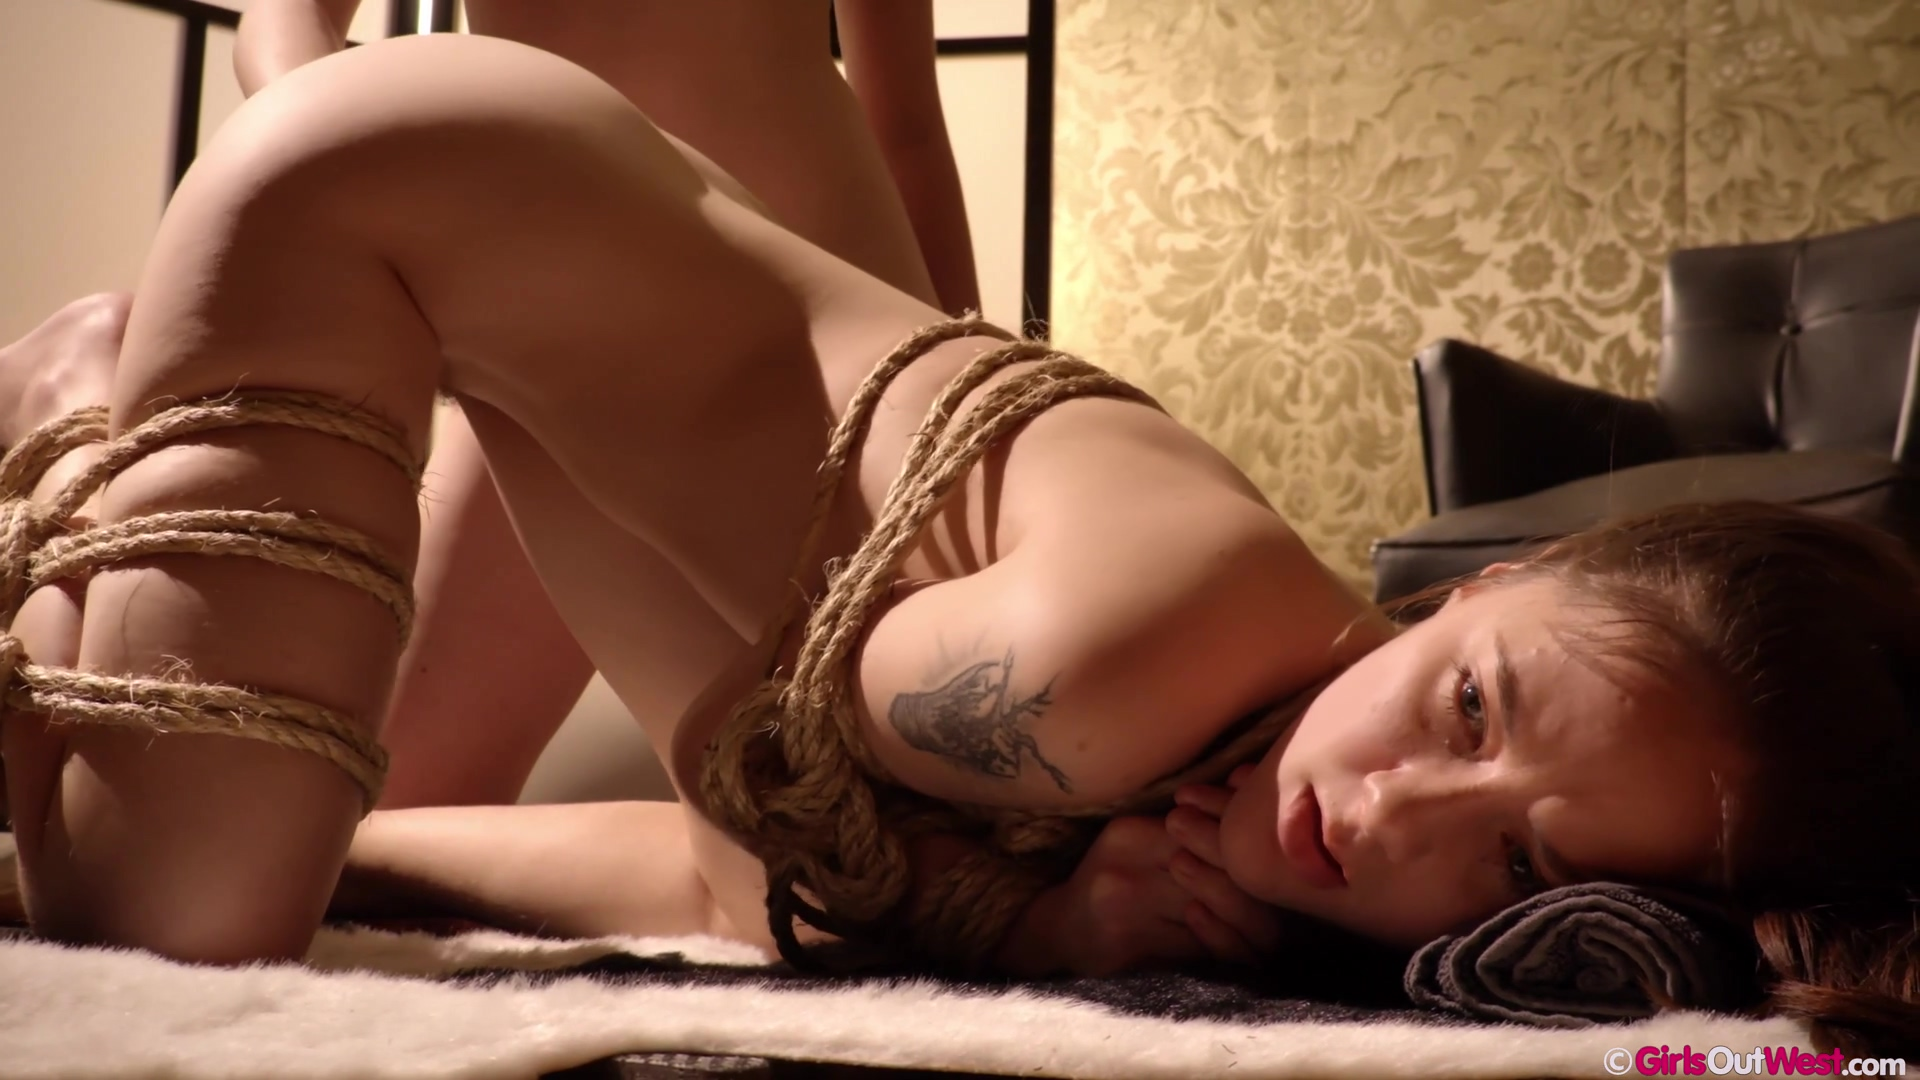 lesbian domination and fisting art, 4K - Eva May and Luci Q